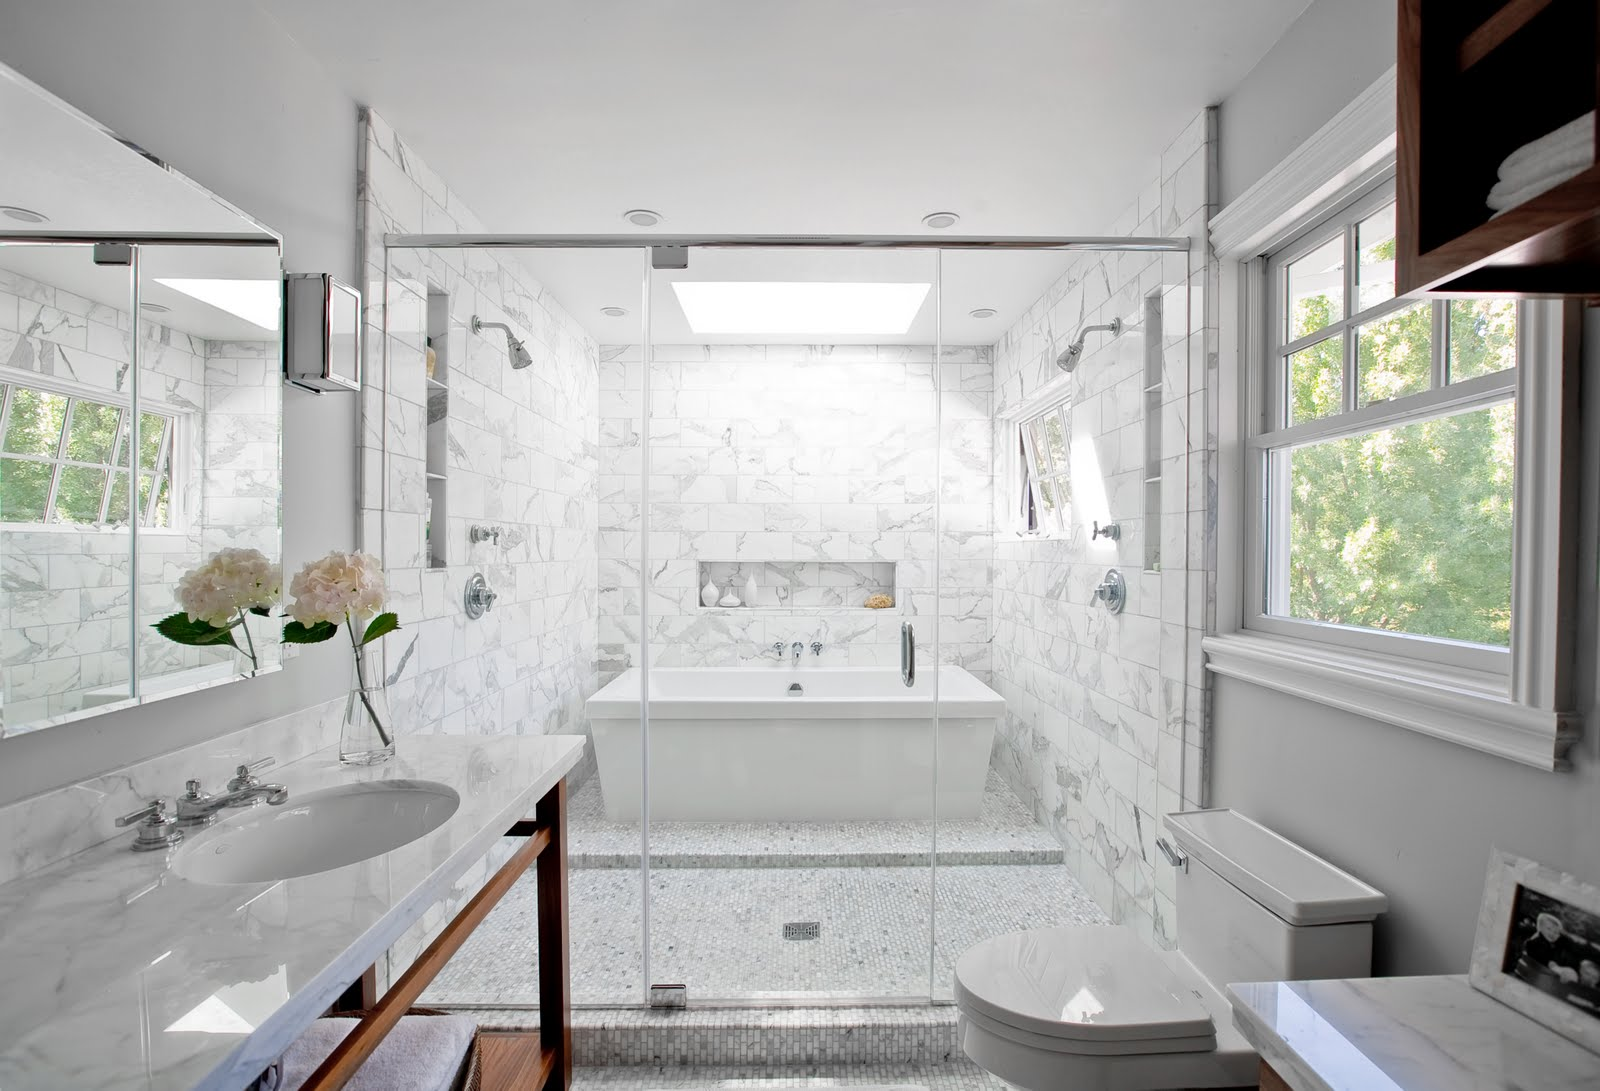 SMART DESIGN: A BATH TUB INSIDE A MARBLE SHOWER - OH WHAT ... on Wet Room With Freestanding Tub  id=98475